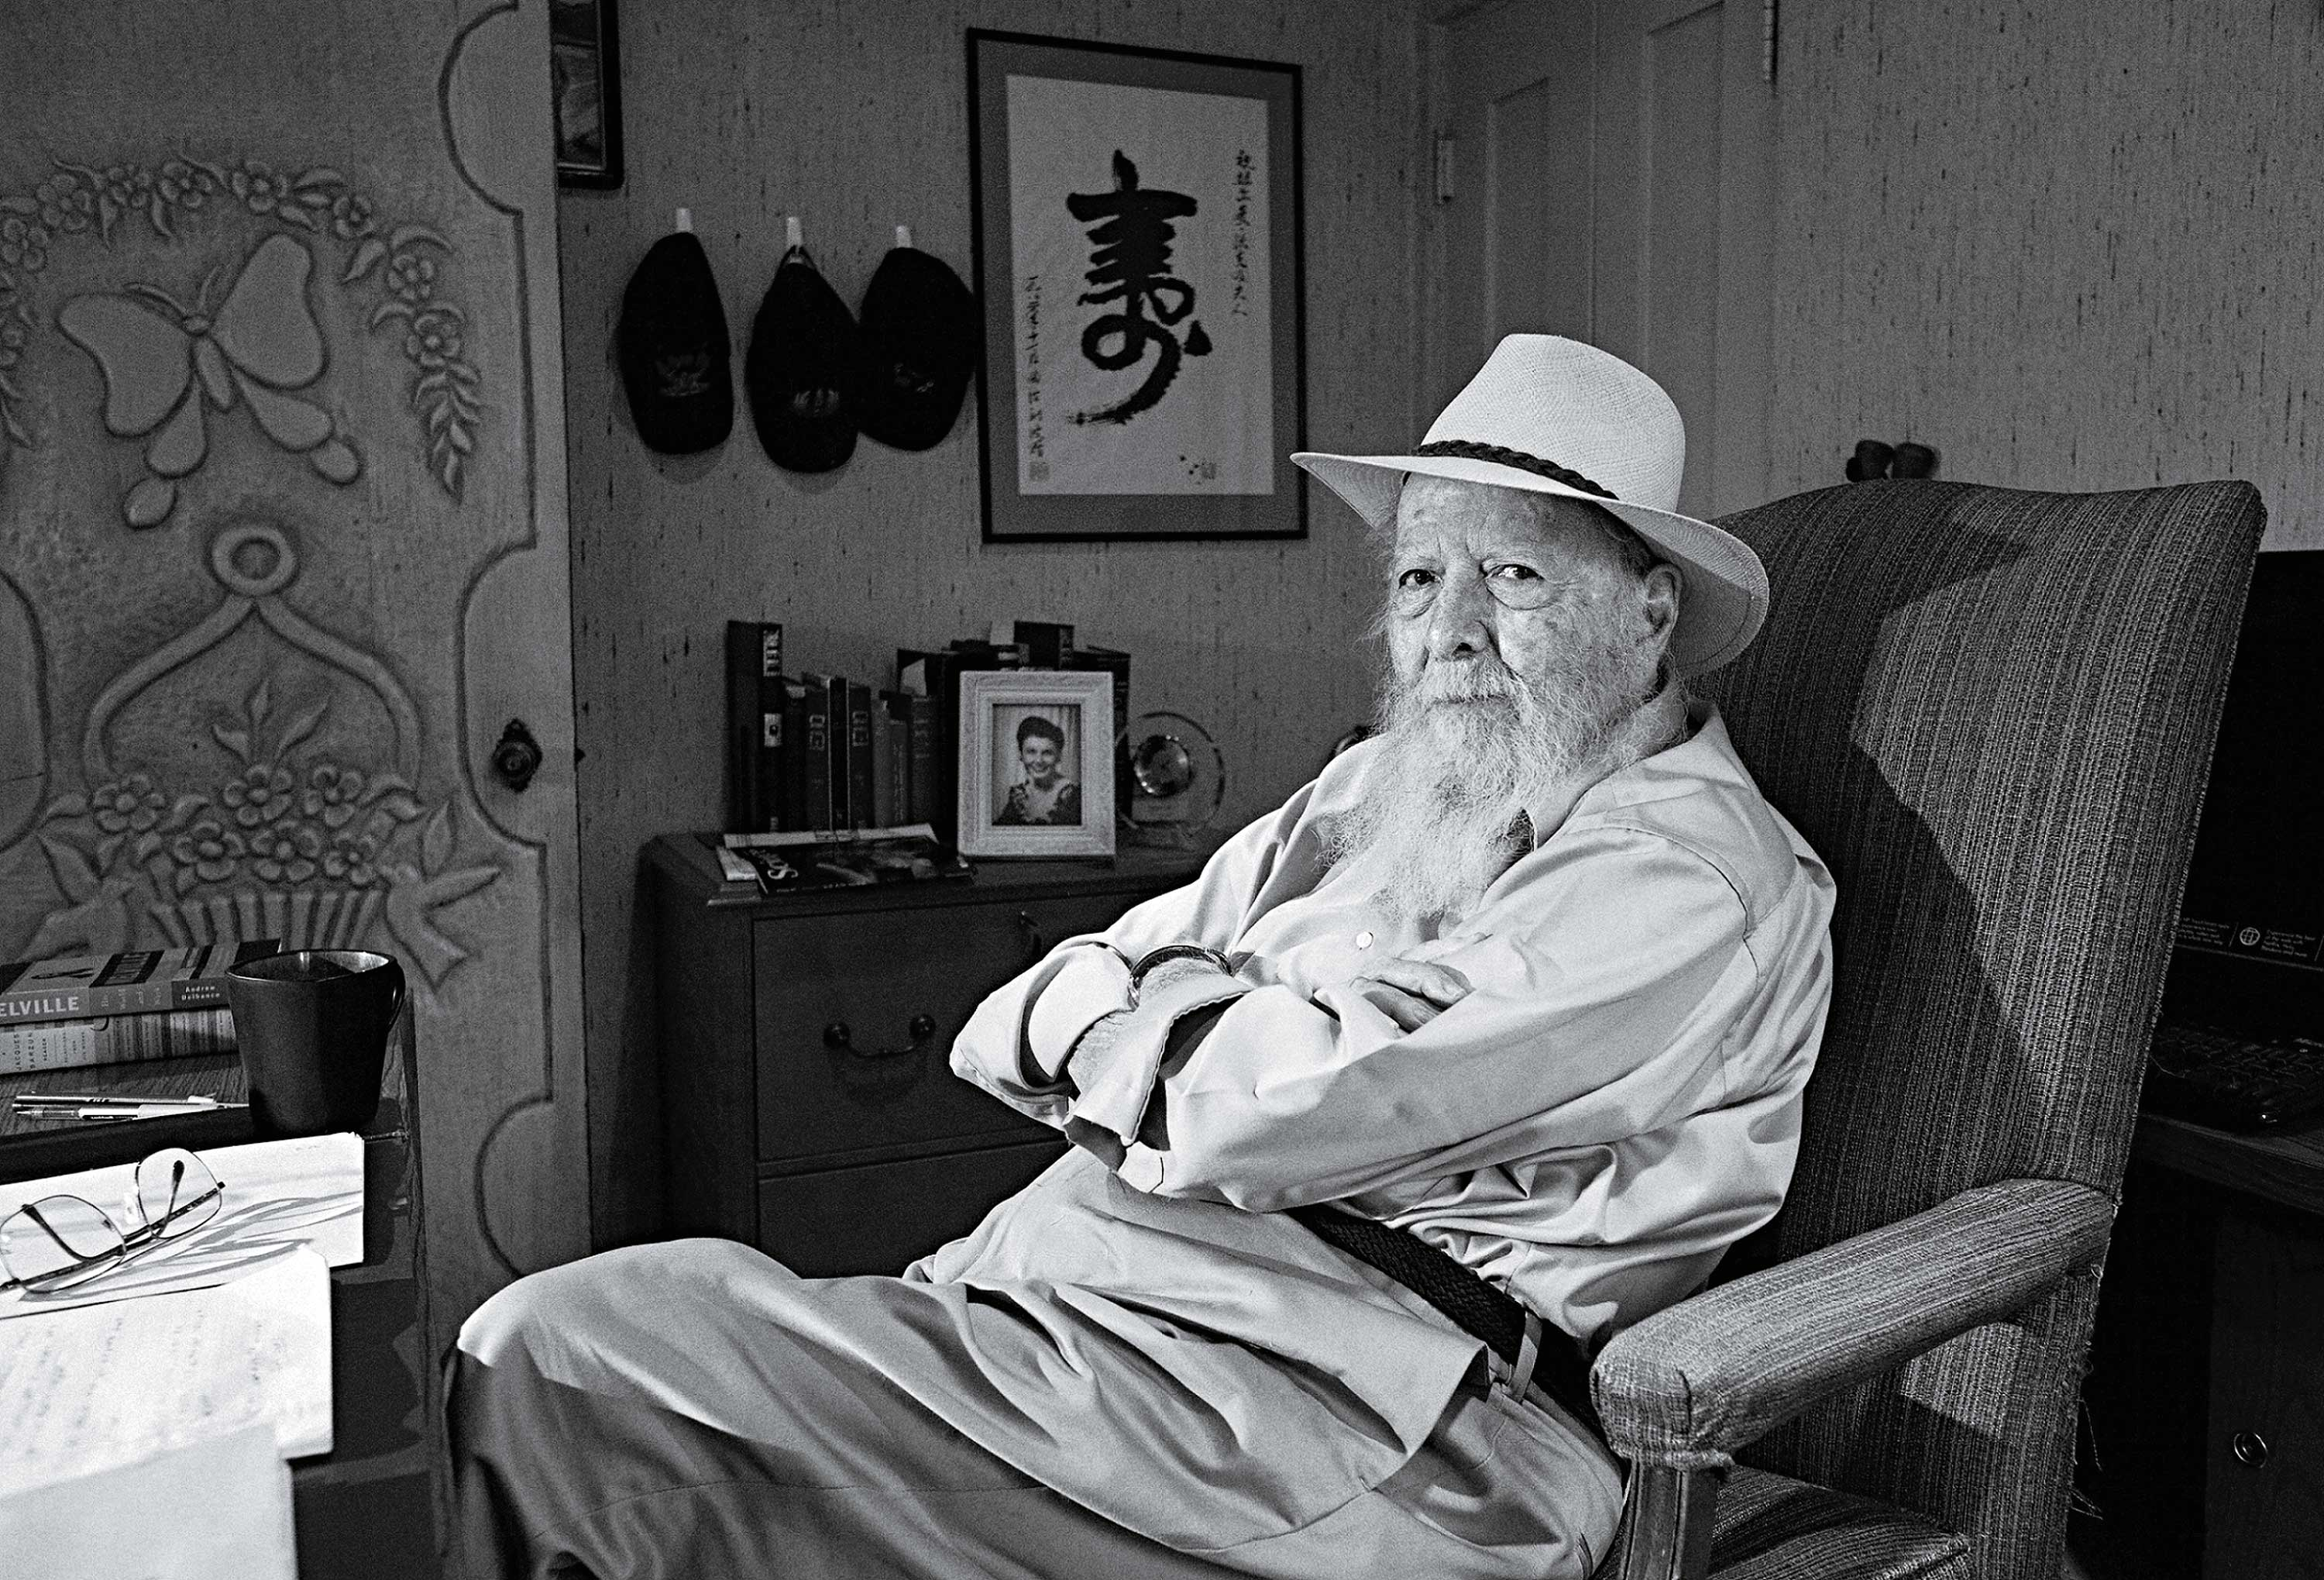 Herman Wouk The best-selling author of The Caine Mutiny and The Winds of War marks his 100th year on earth with a new memoir, Sailor and Fiddler